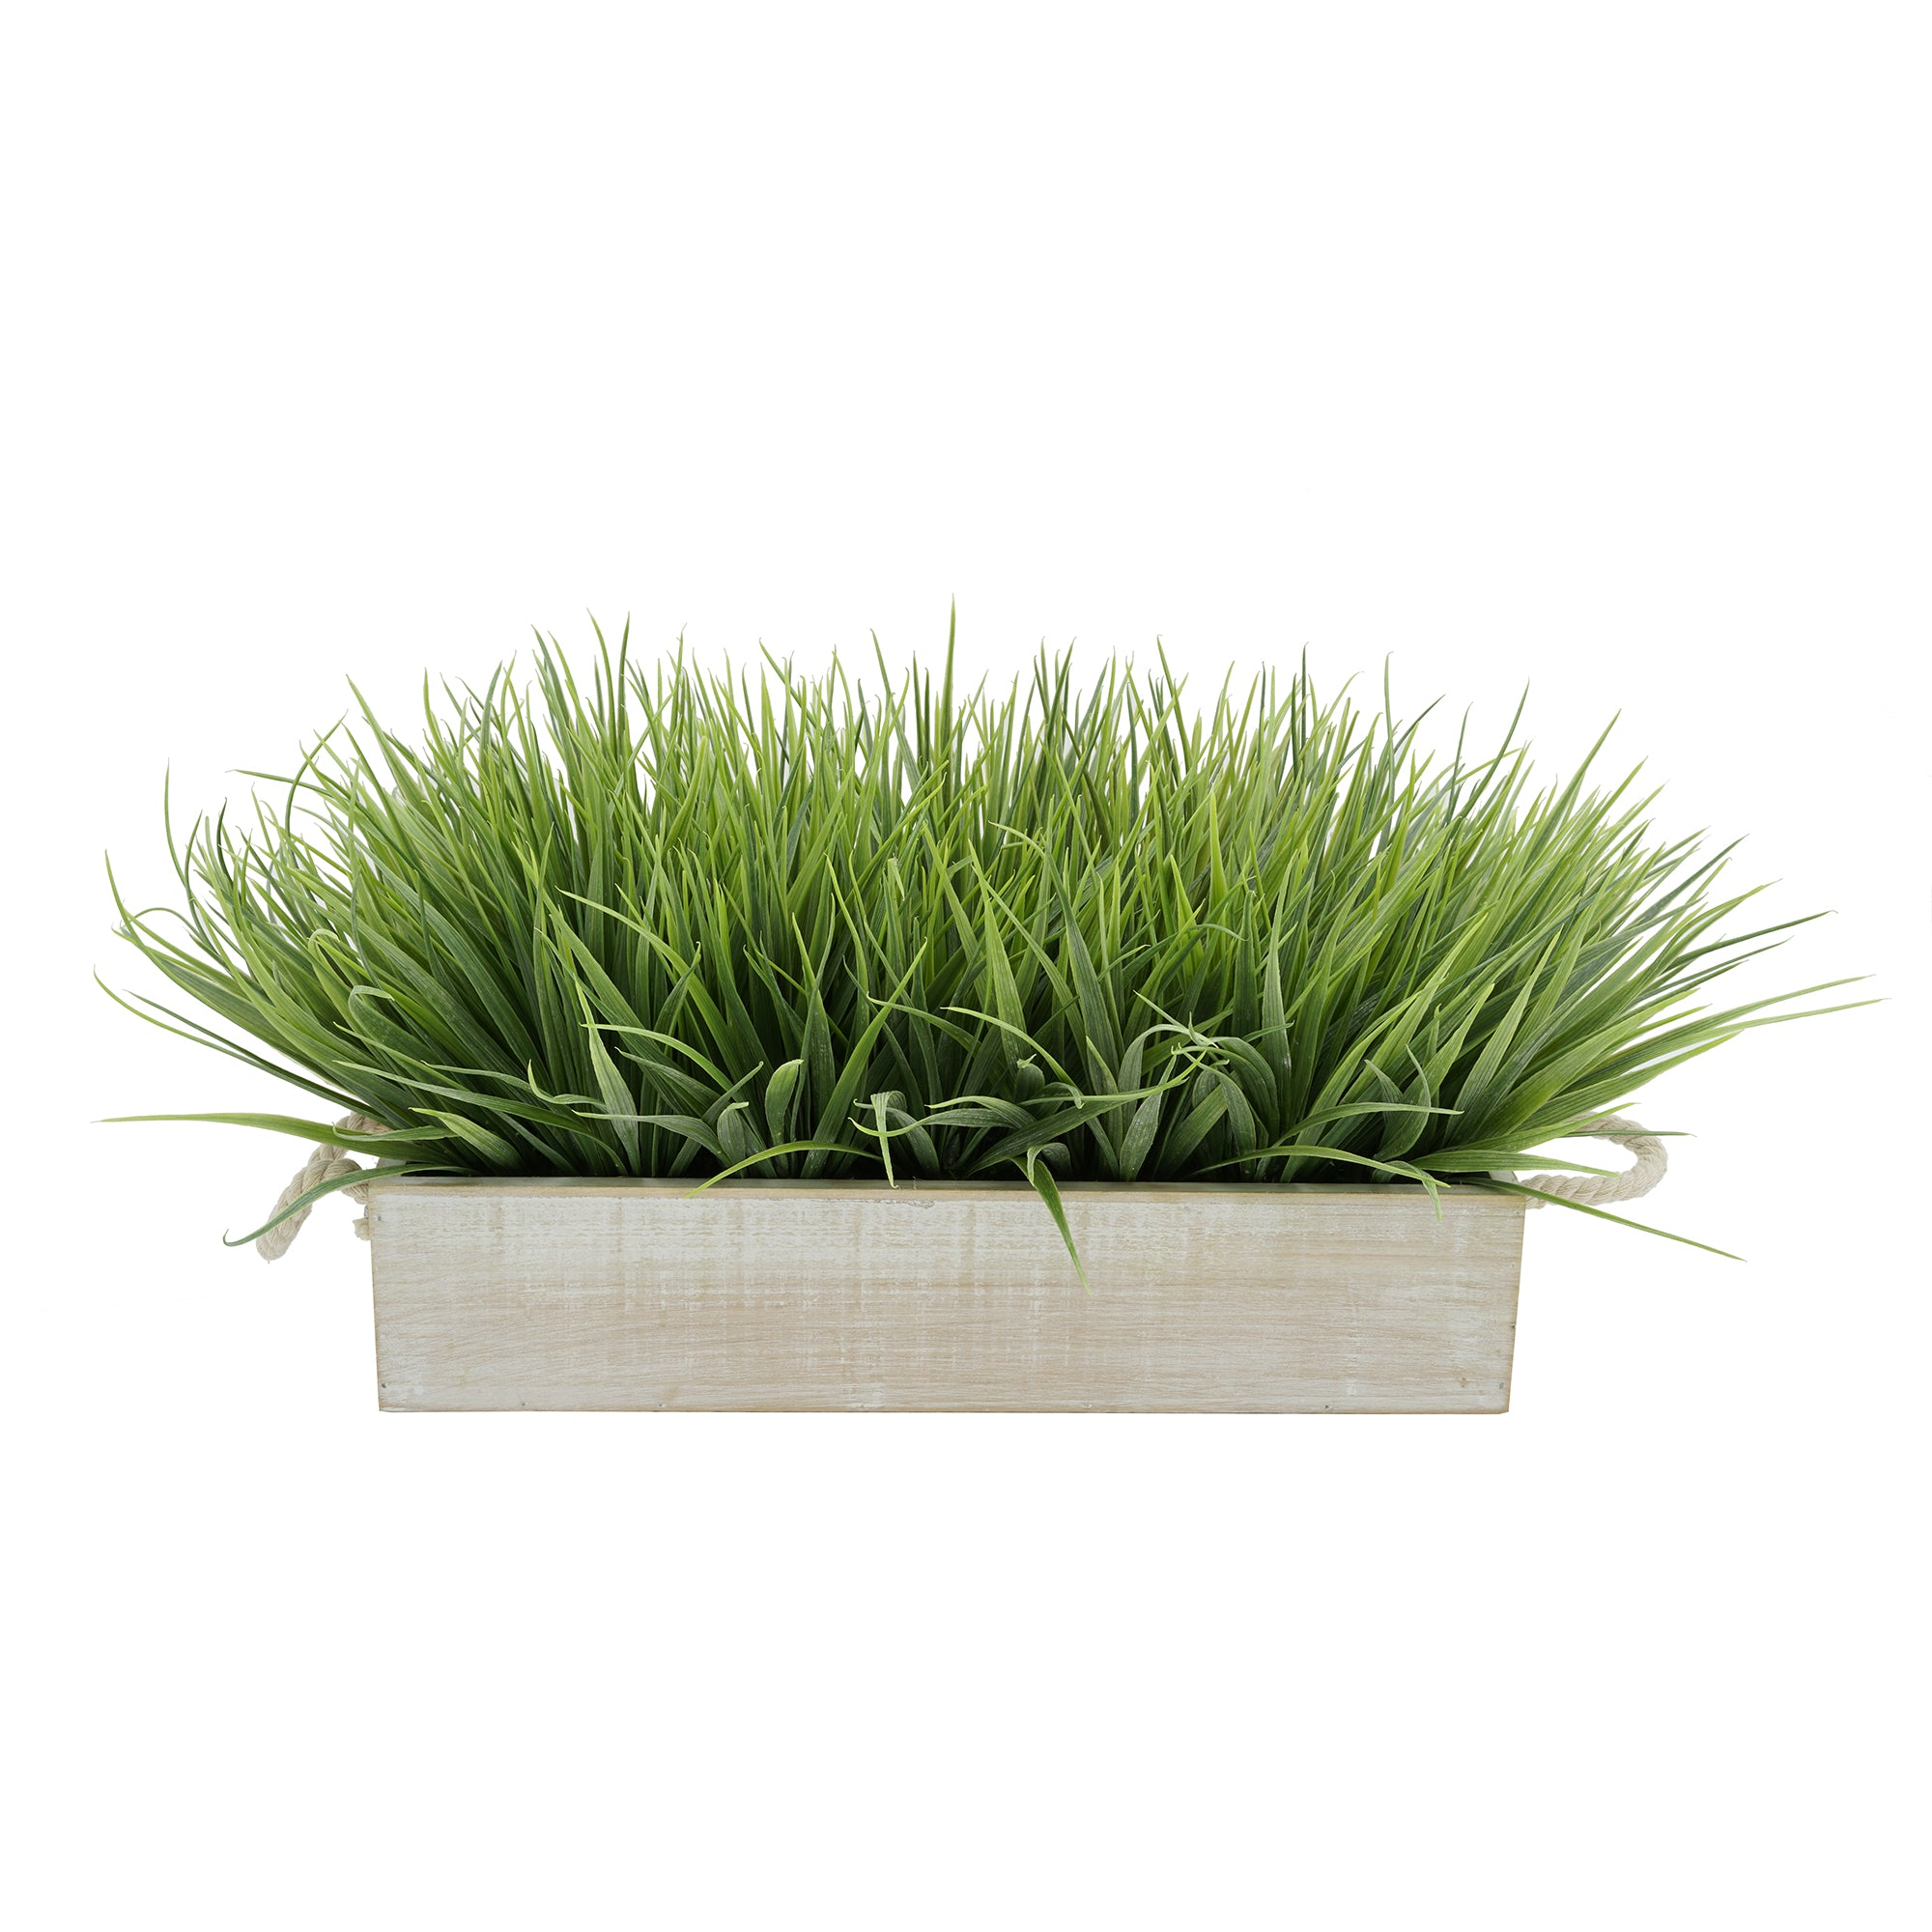 "Artificial Frosted Farm Grass in 15"" White-Washed Wood Trough with Rope Handles"